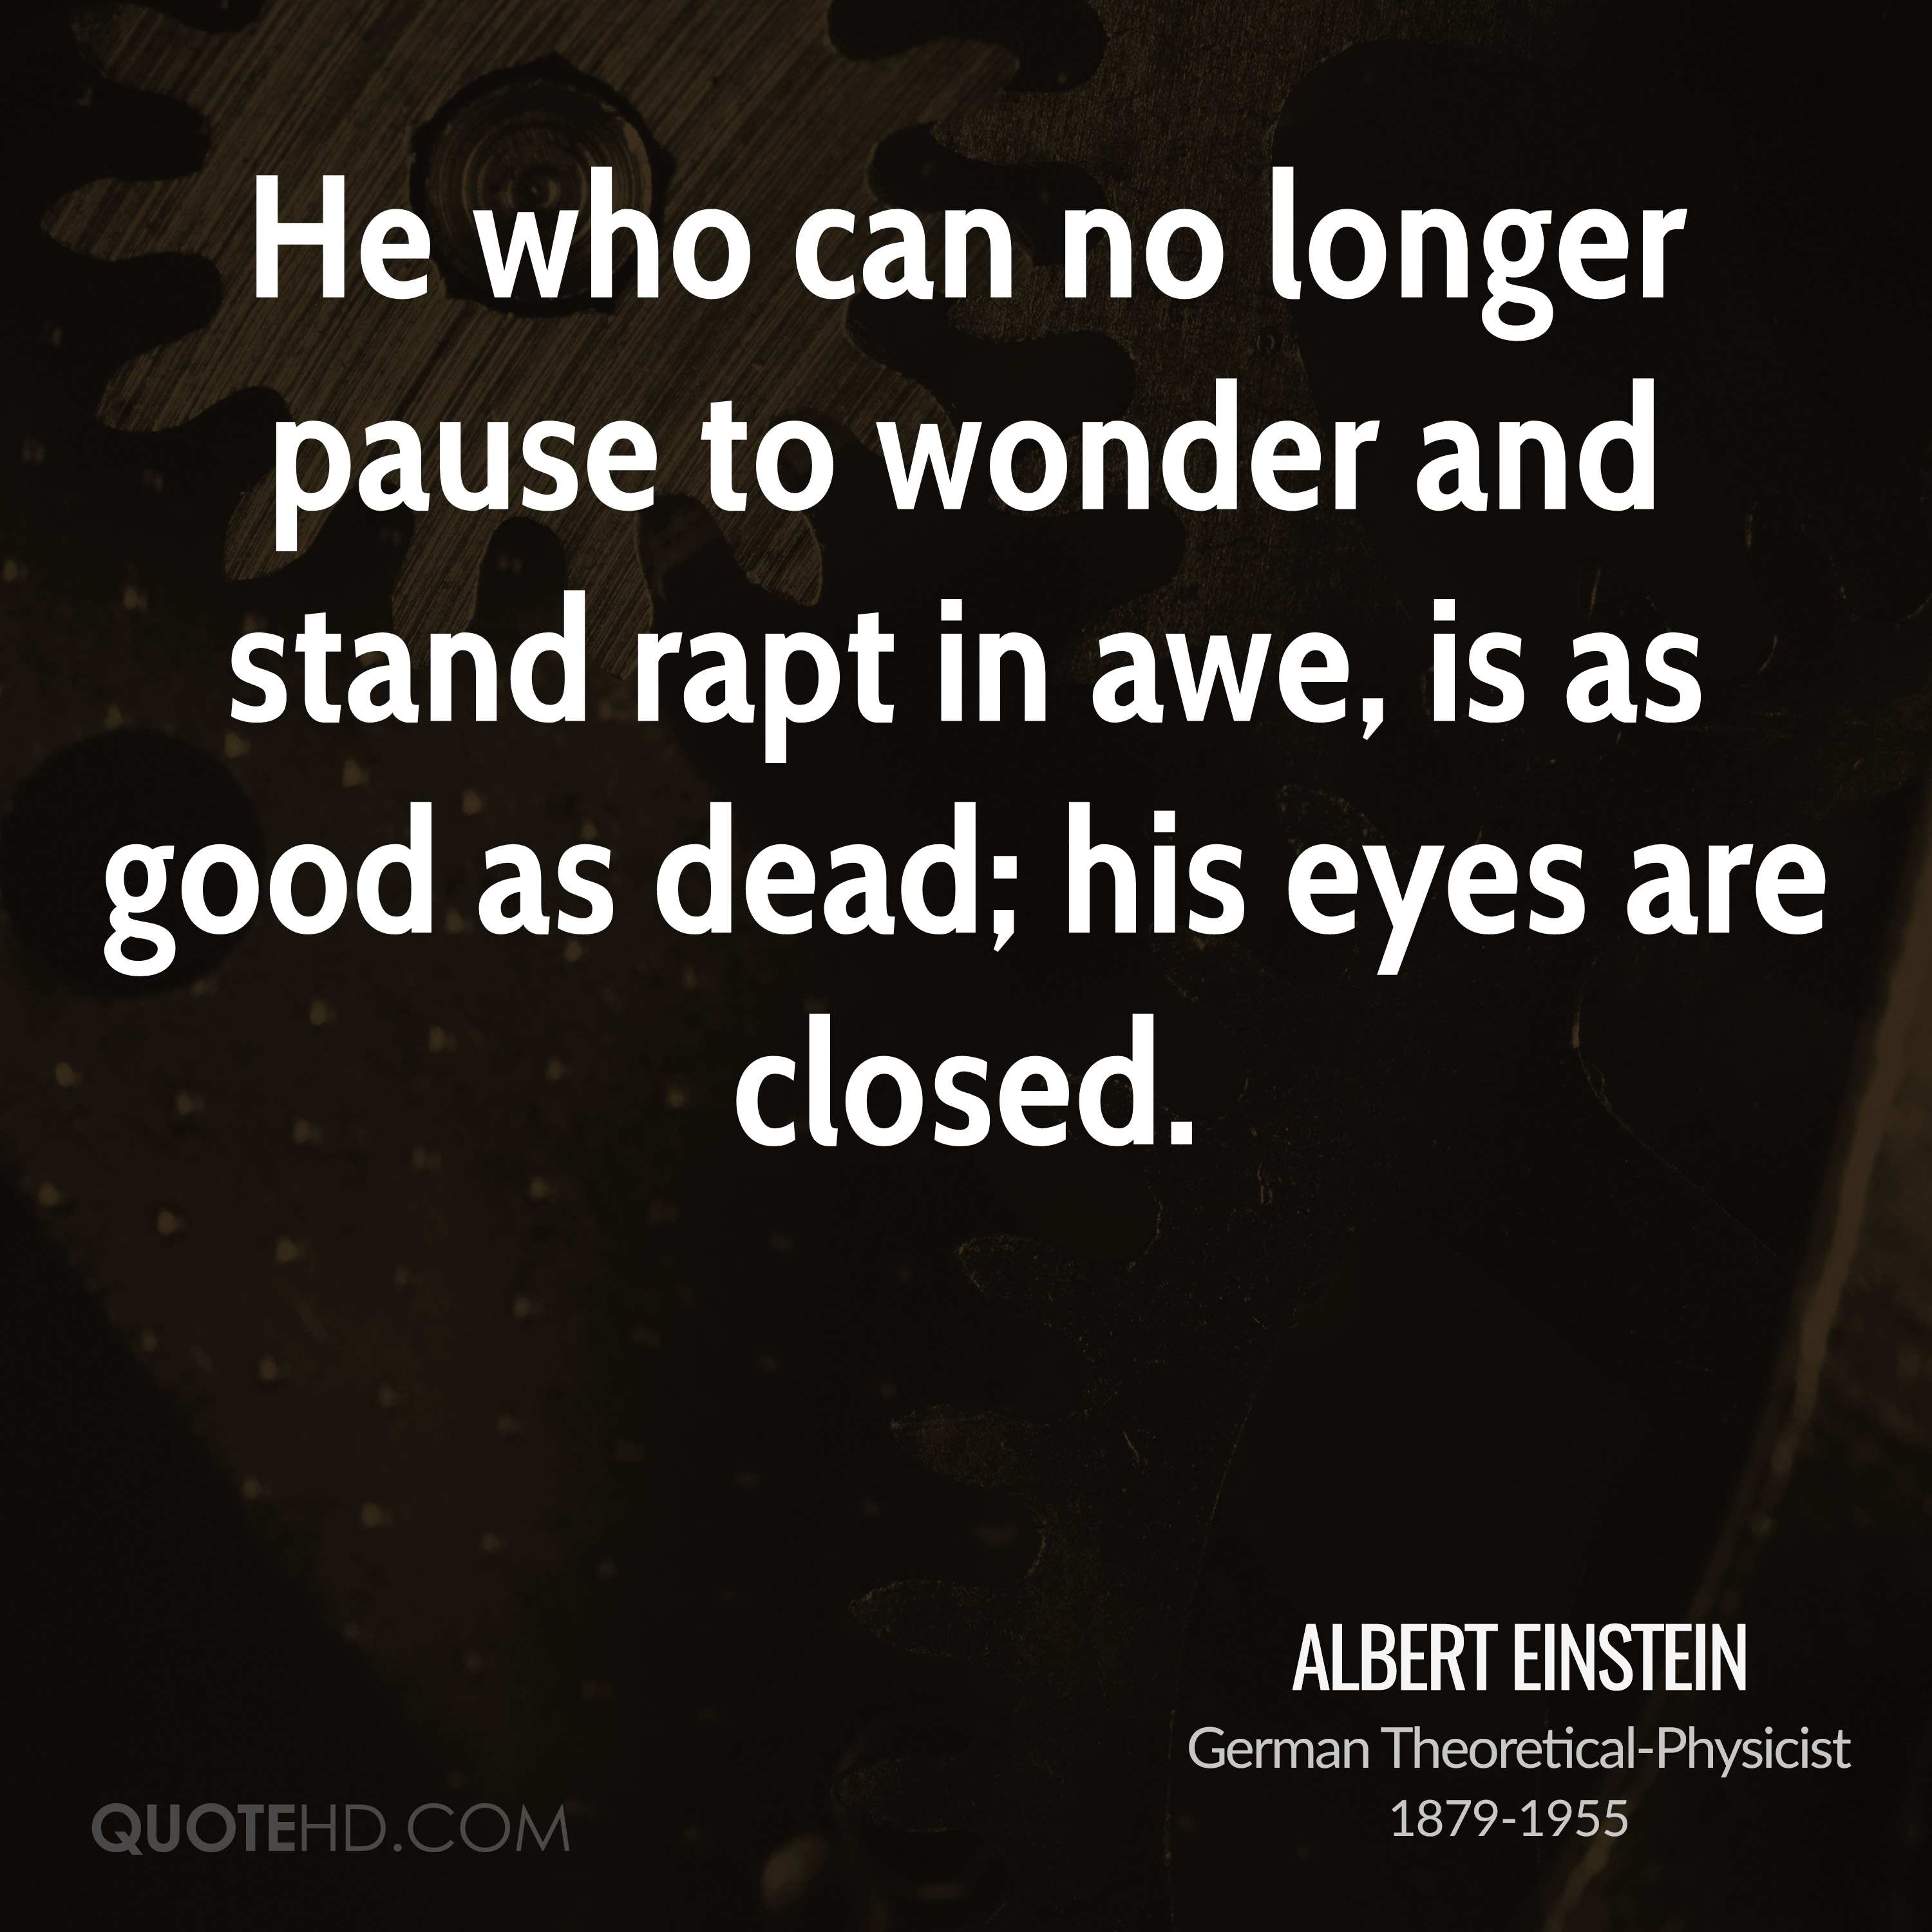 He who can no longer pause to wonder and stand rapt in awe, is as good as dead; his eyes are closed.